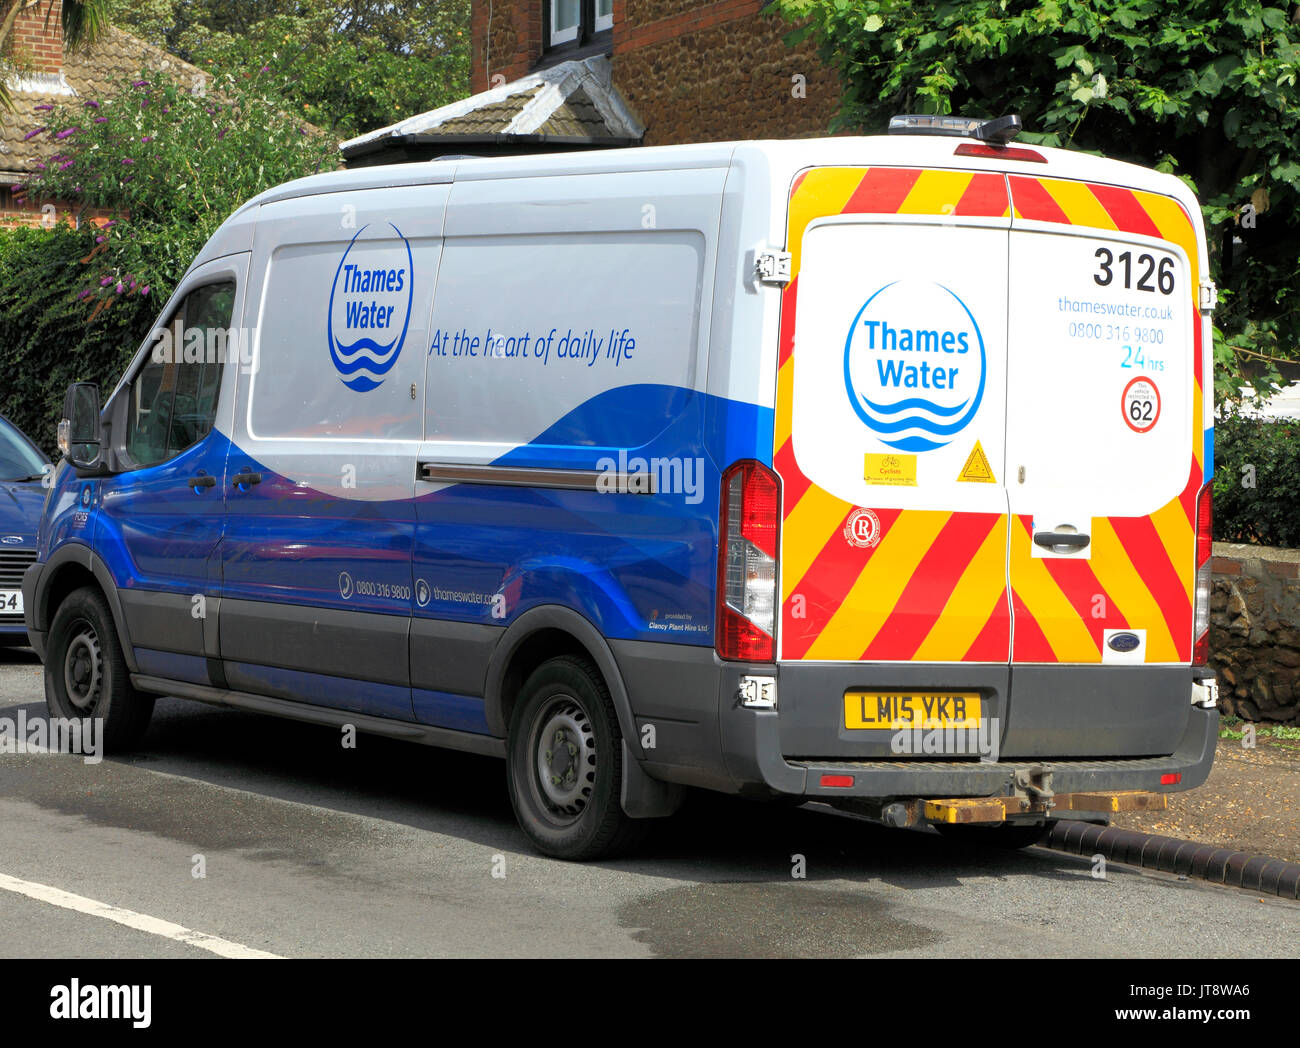 Thames Water, company, companies, service vehicle, van, vans, vehicles, England, UK - Stock Image